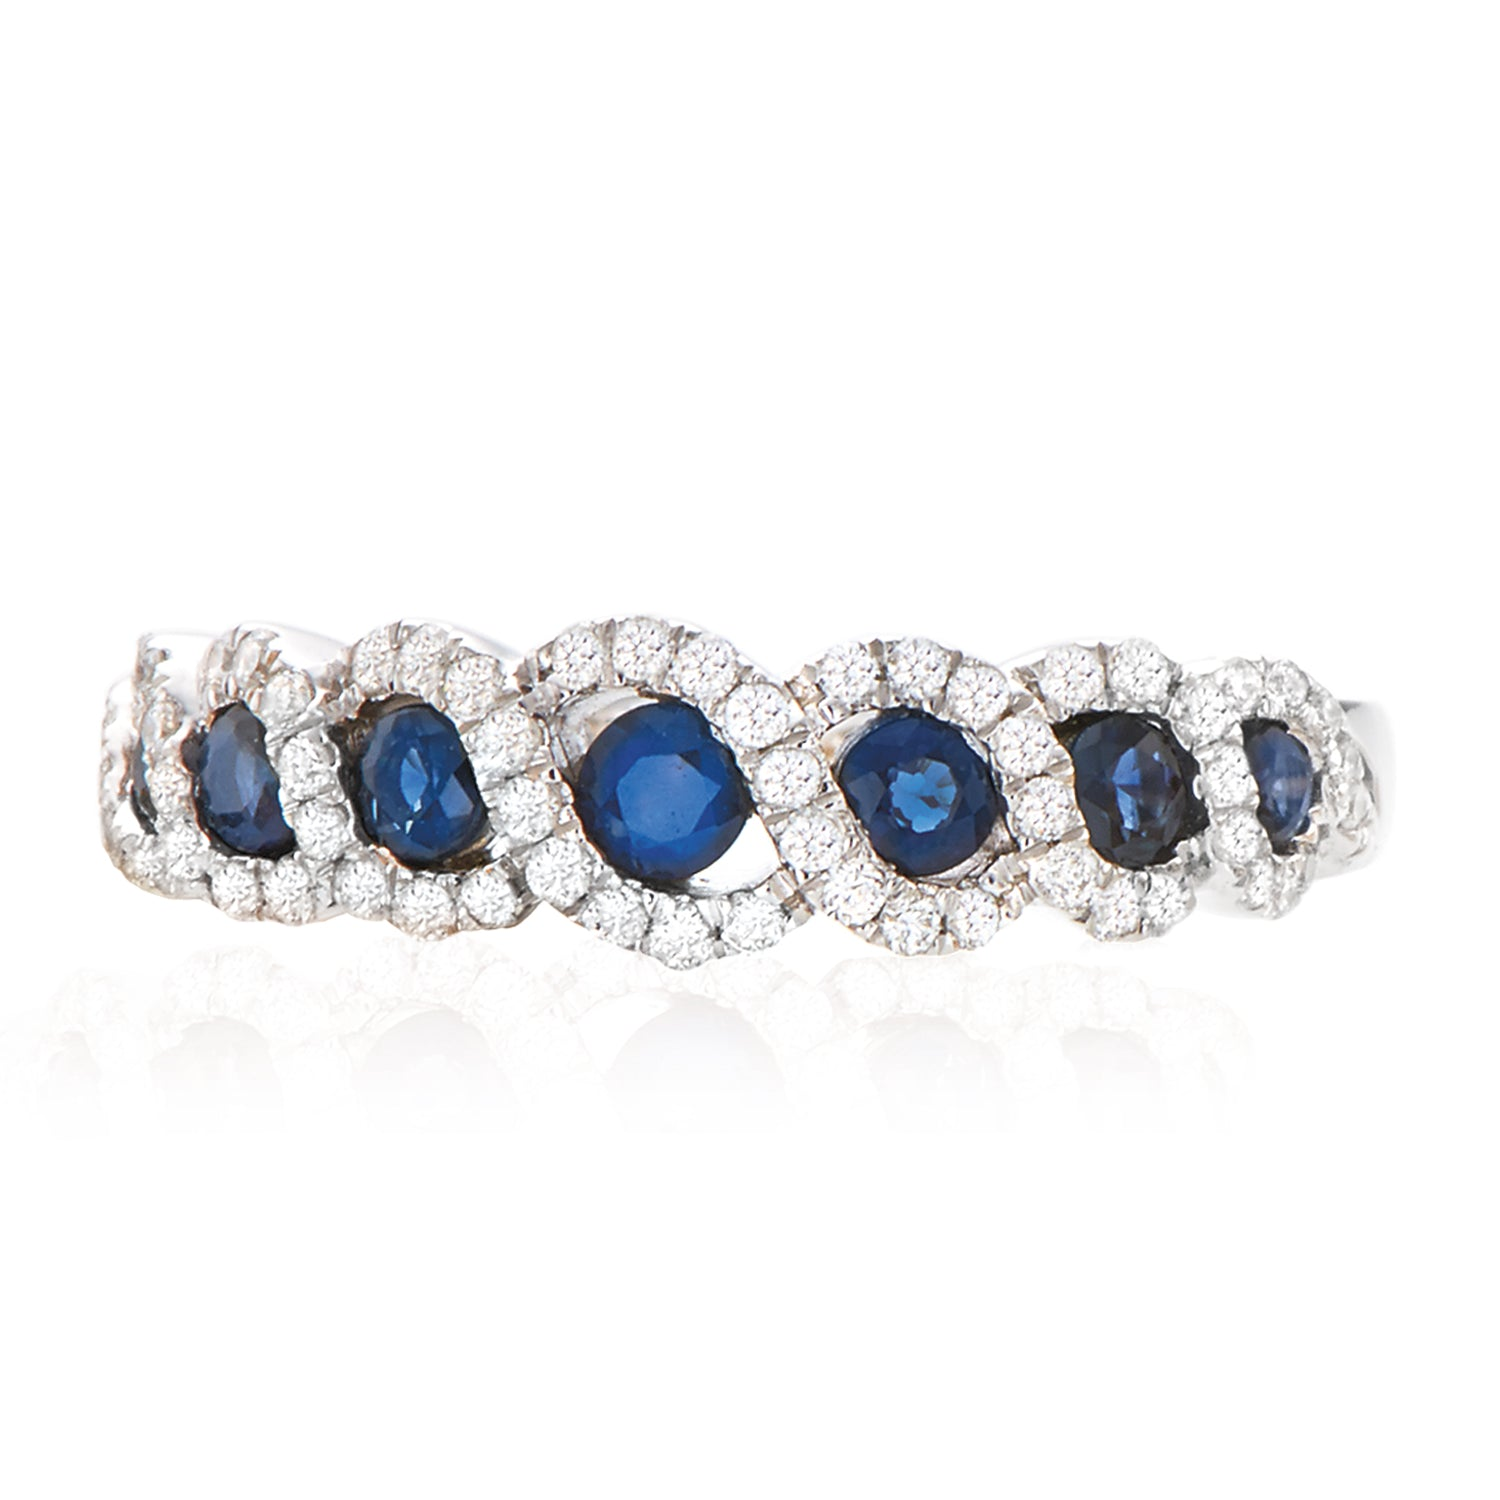 18ct White Gold Round Brilliant Cut Sapphire with 1/4 CARAT tw of Diamonds